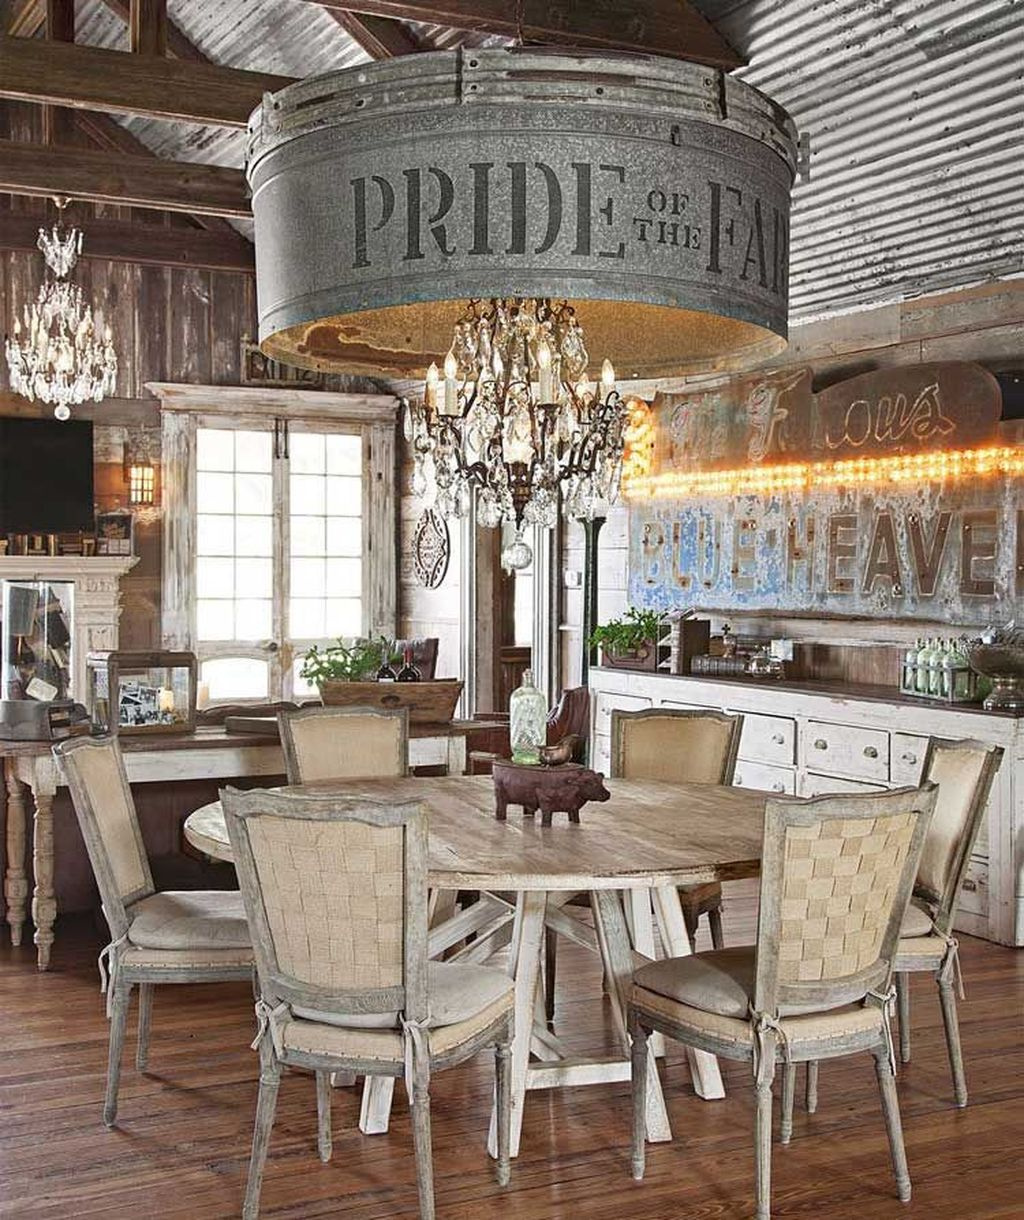 The Best Country Style Interior Design Ideas 03